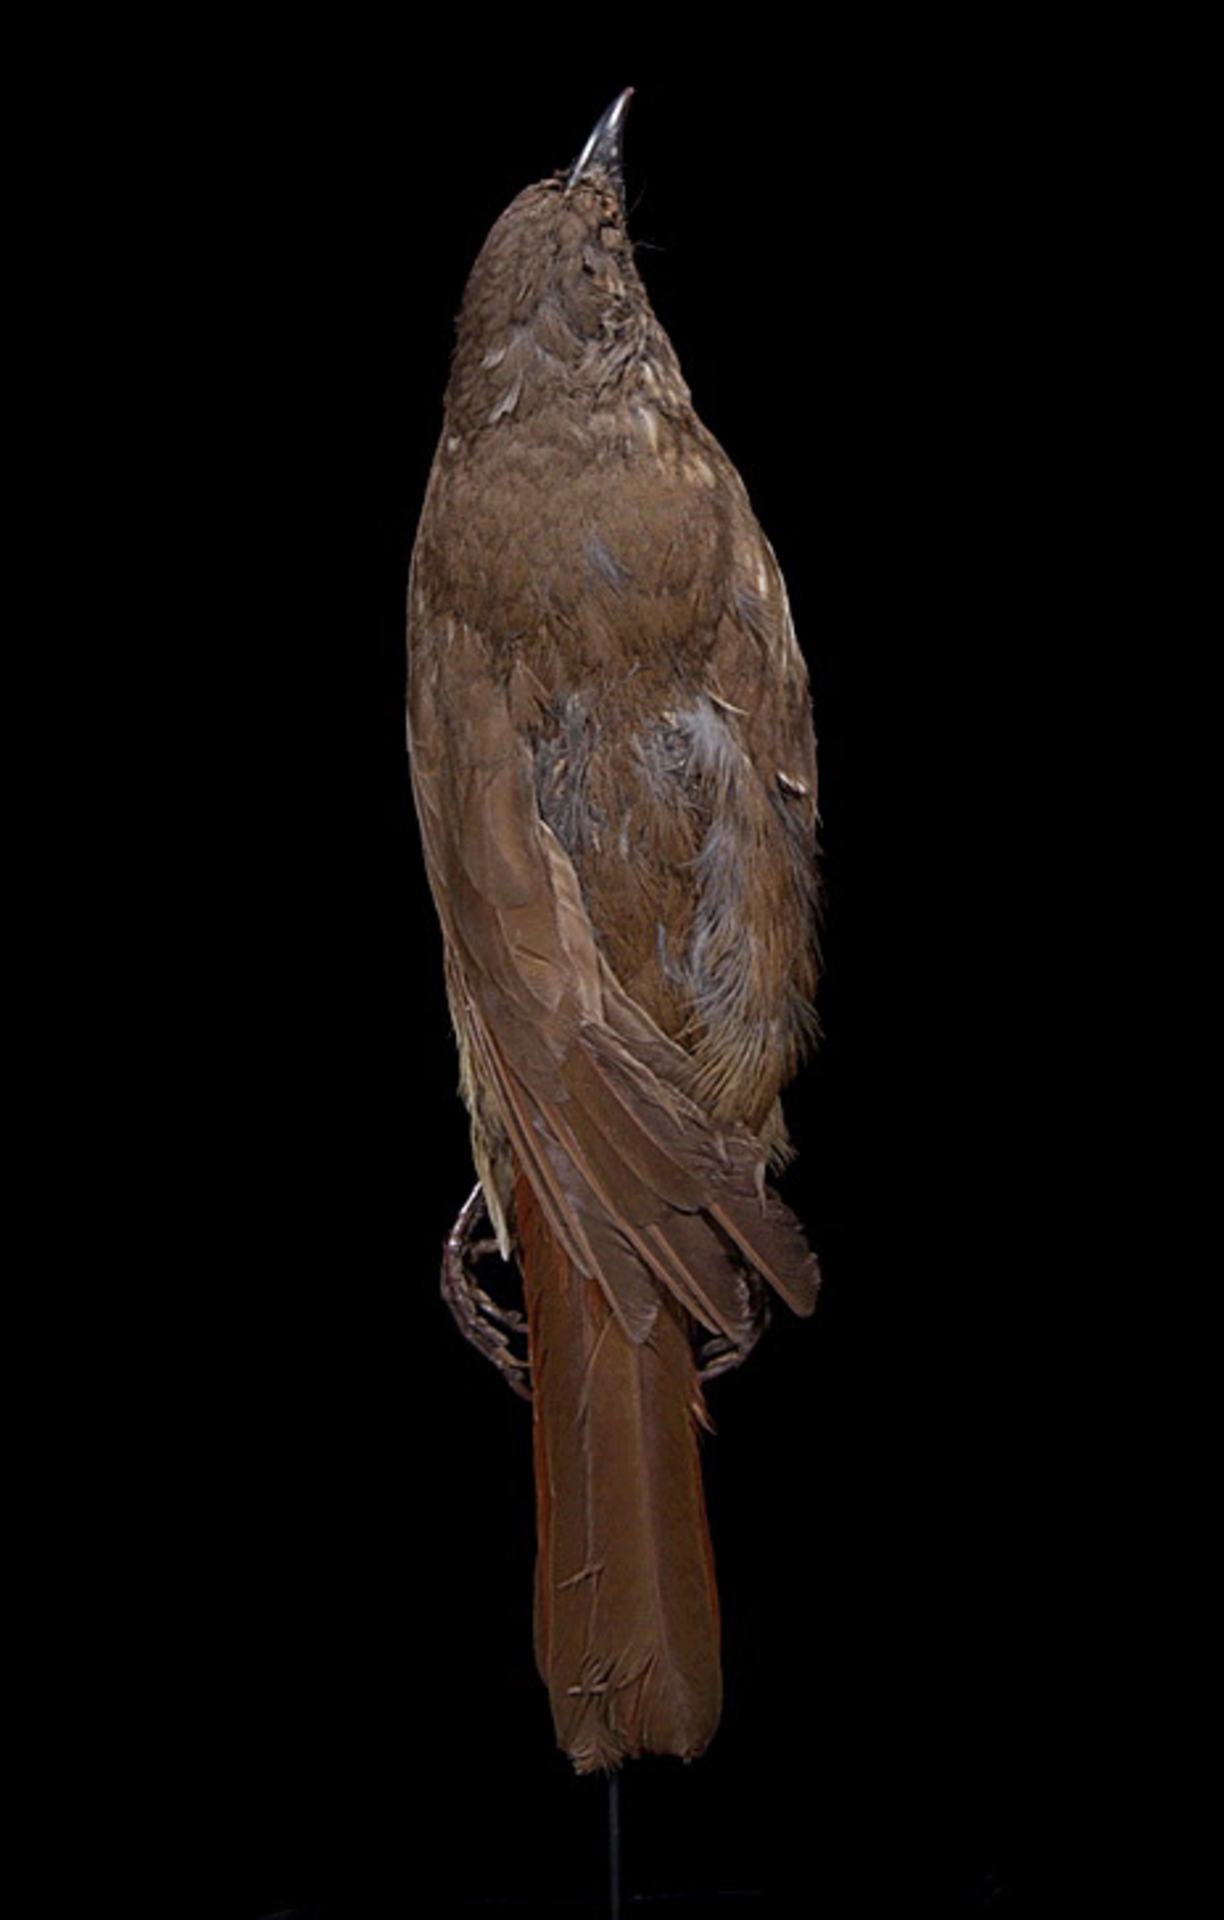 RMNH.AVES.110040 | Turnagra capensis capensis (Sparrman, 1787)